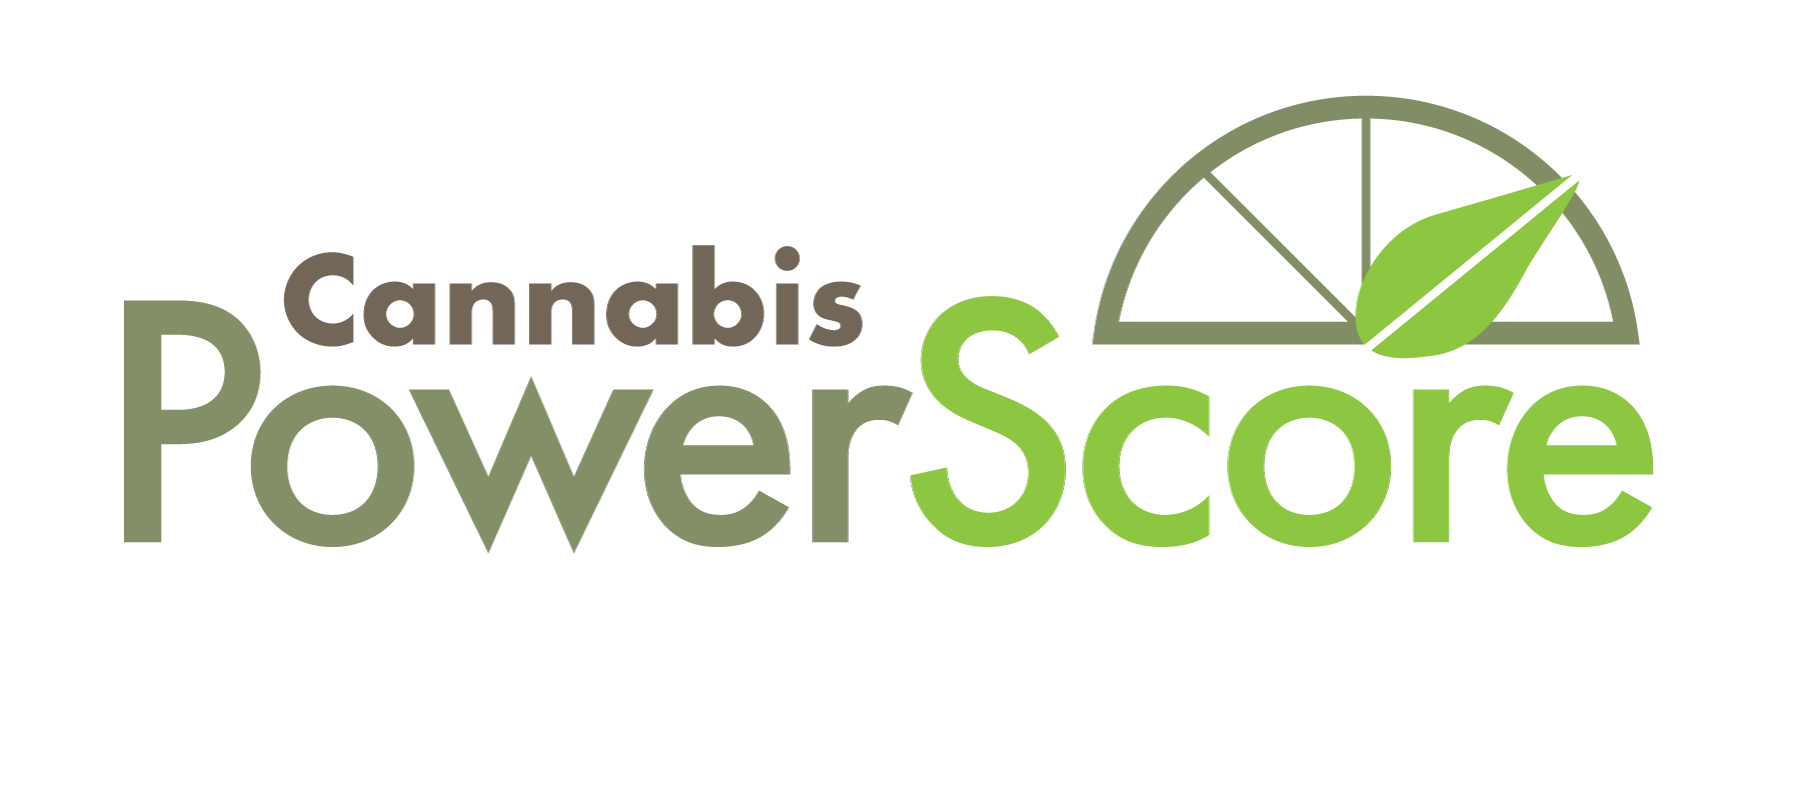 Cannabis PowerScore